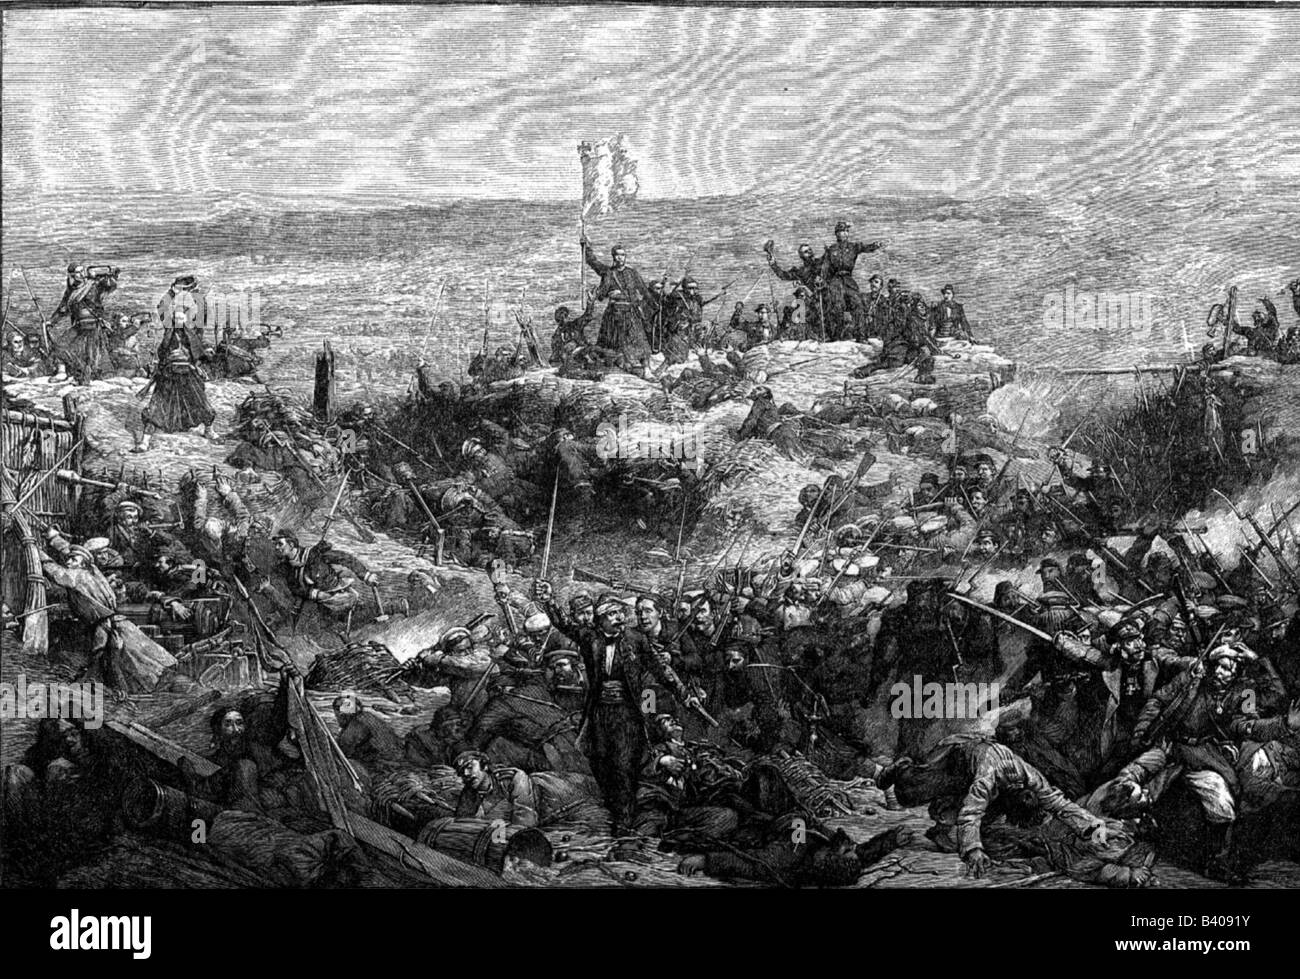 Crimean War 1853 - 1856, siege of Sevastopol 1854 / 1855, escalade of Malakhov by French Zouave, 8.9.1855, wood - Stock Image